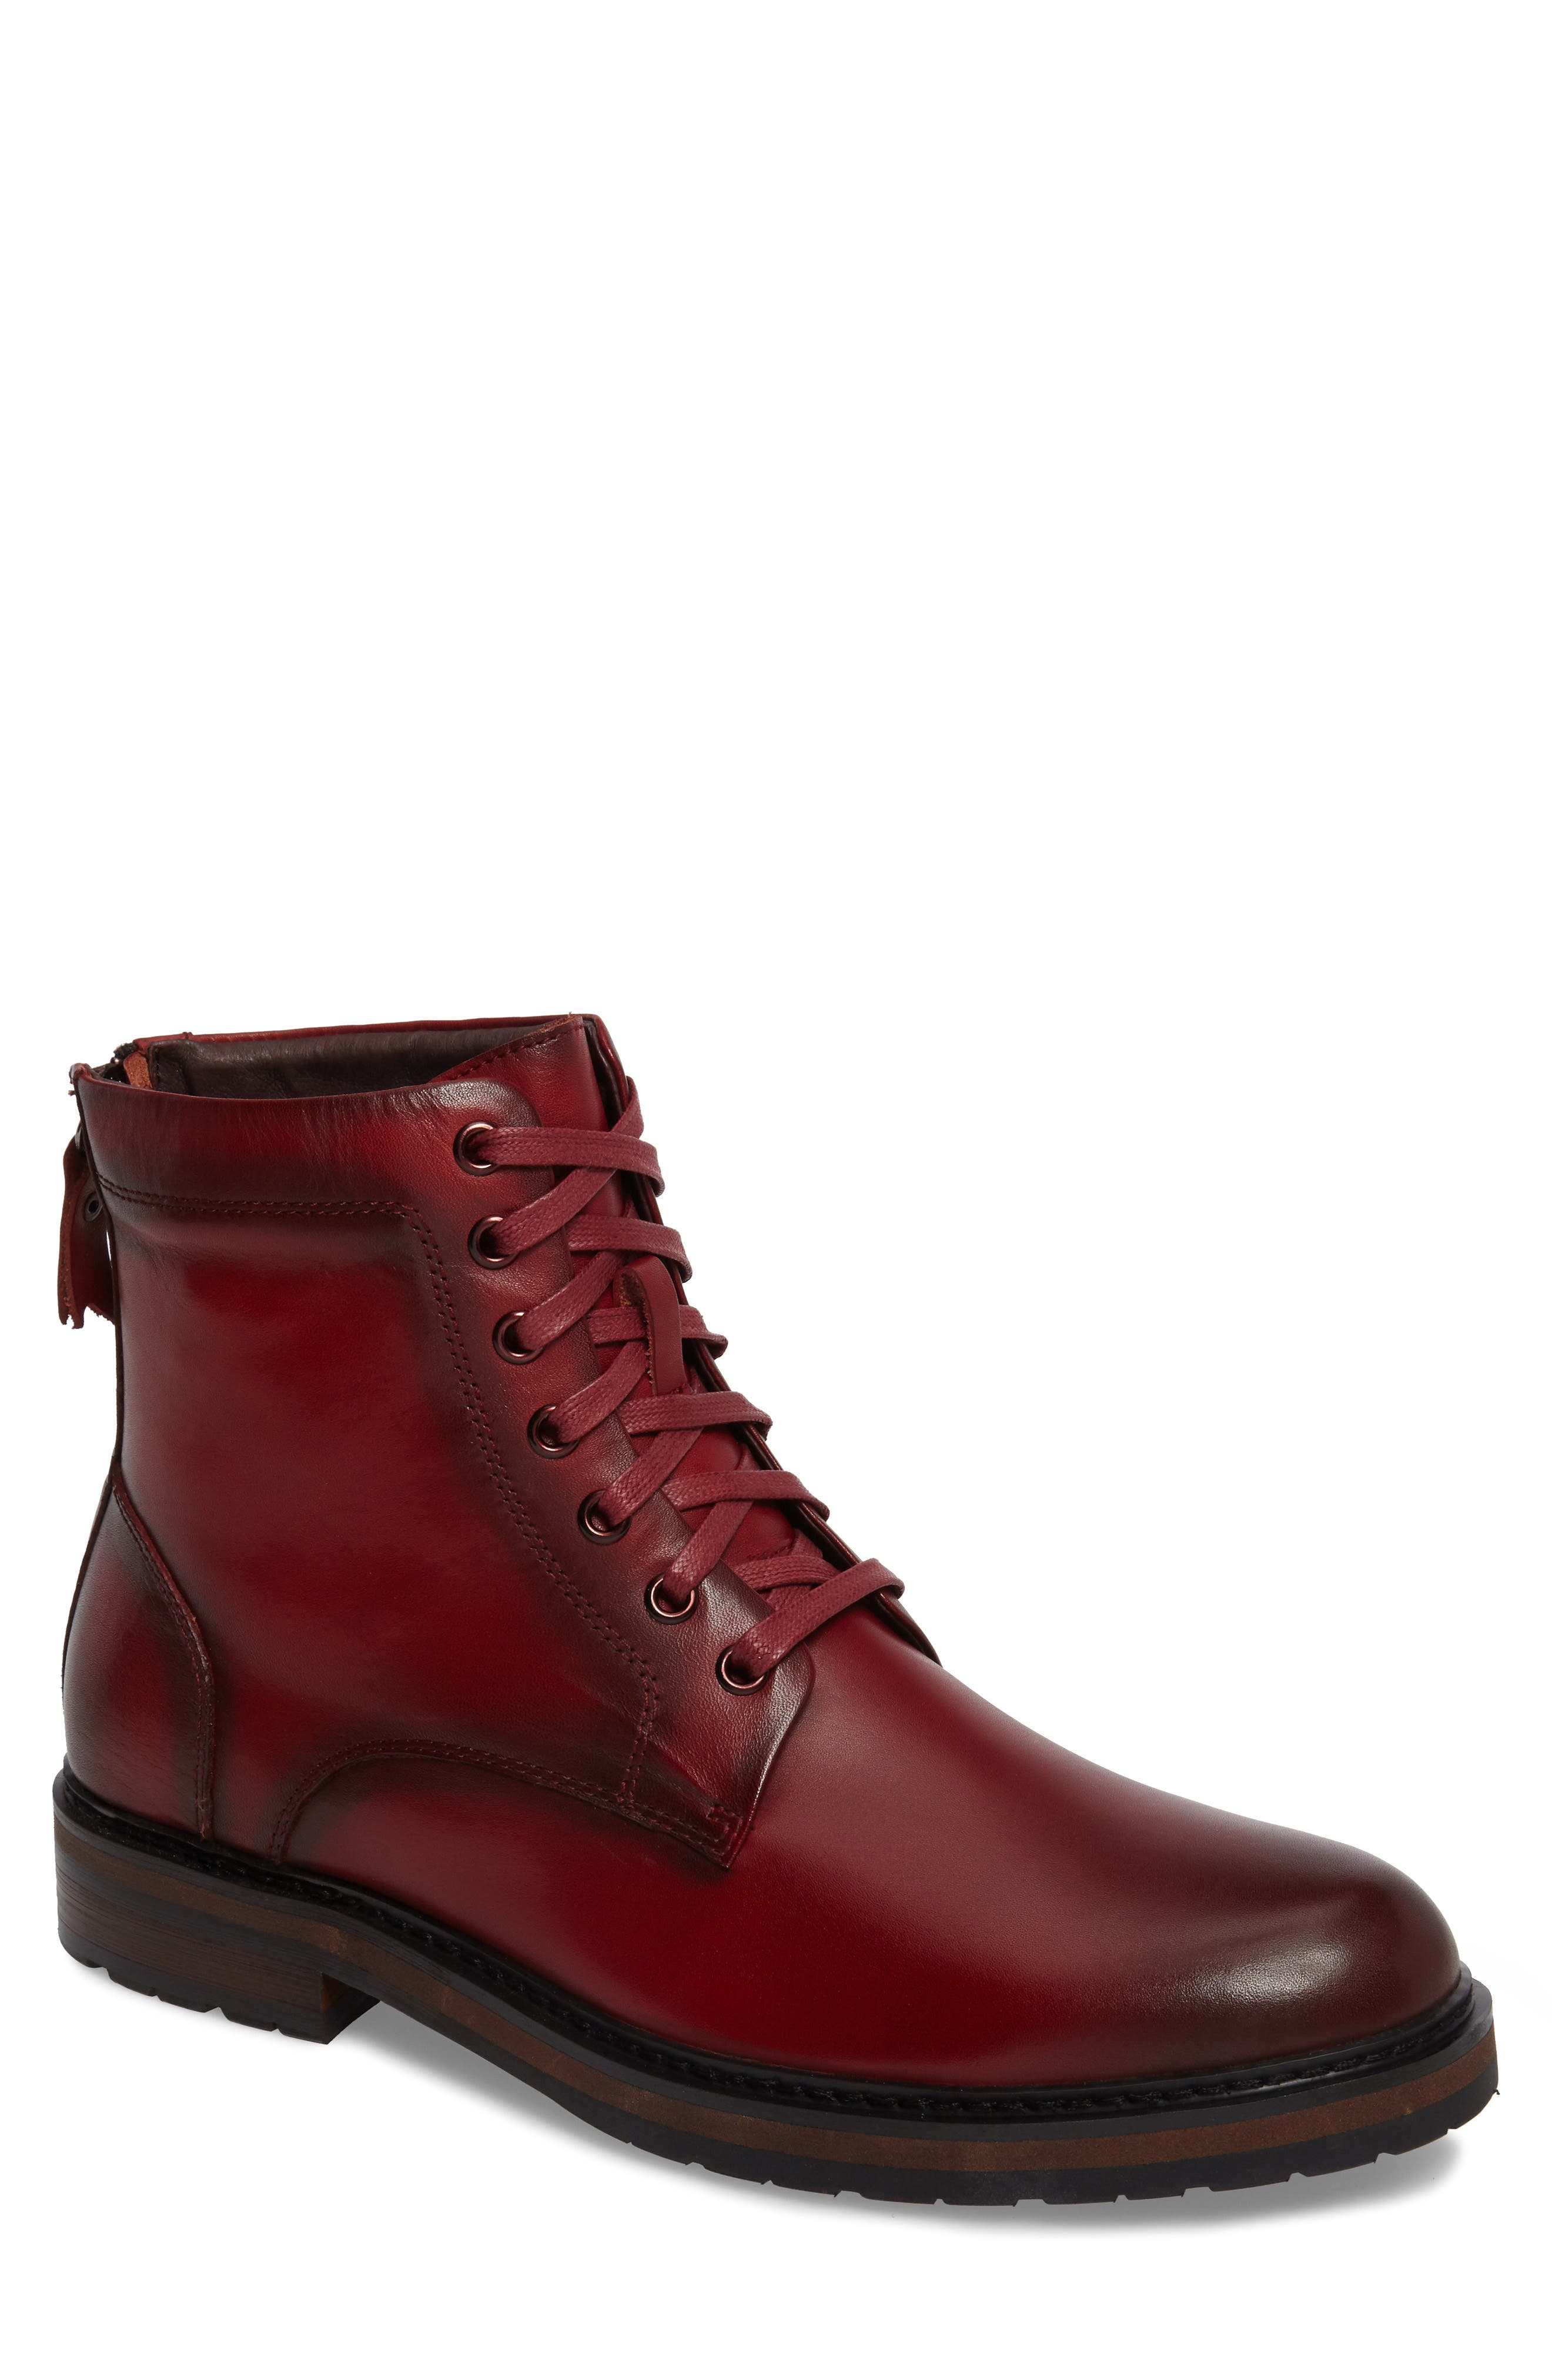 Miro Combat Boot,                             Main thumbnail 1, color,                             Wine Leather